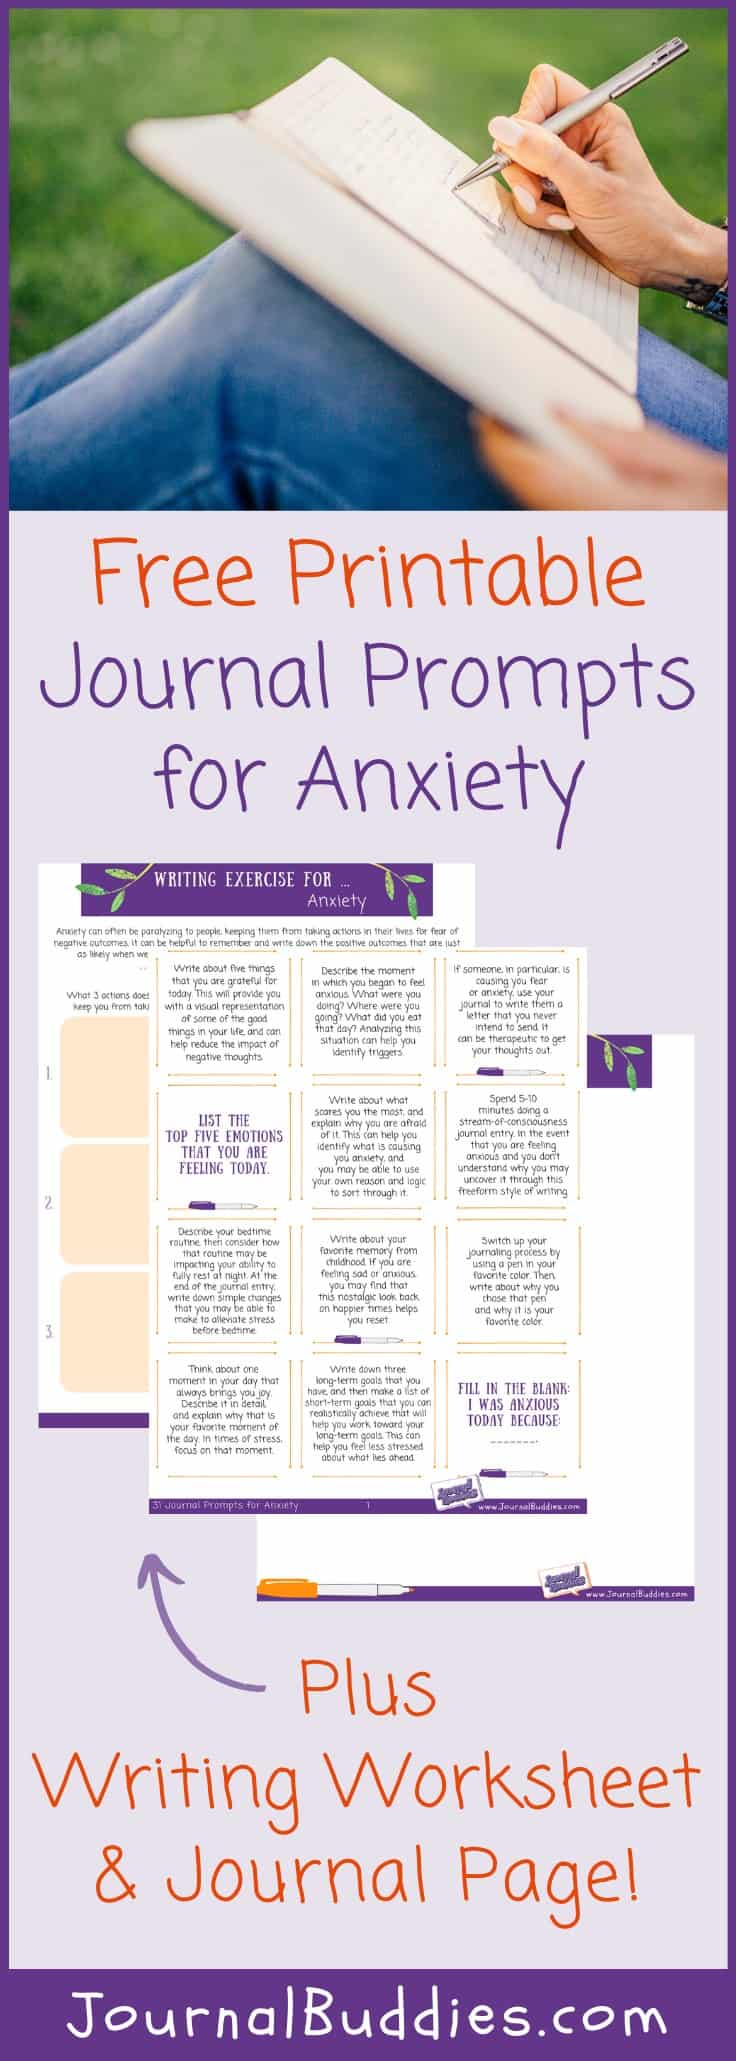 Printable Writing Prompts for Anxiety